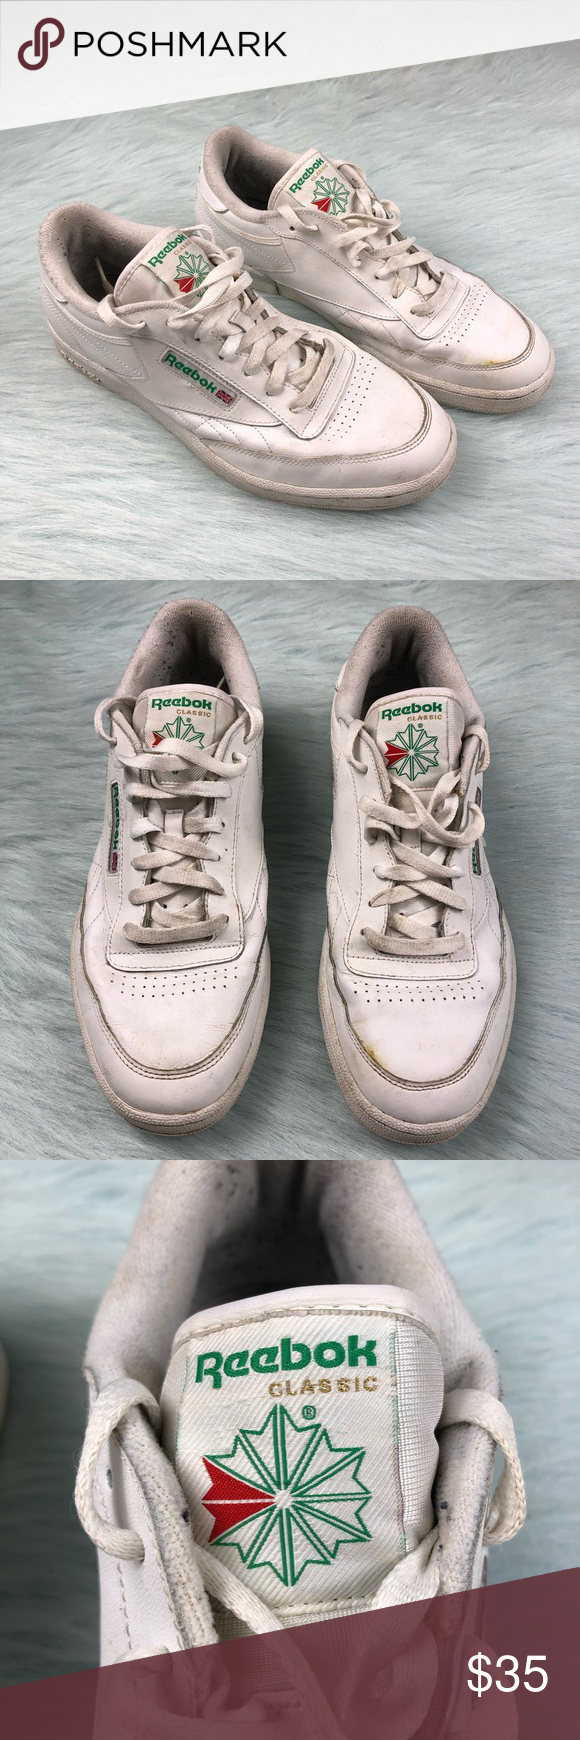 c610816324ab2 Reebok Classic Club C 85 Vintage Tennis Shoes 11 Men s US size 11 Reebok  Classic Club C 85 white green sneakers. In good condition with minor wear.